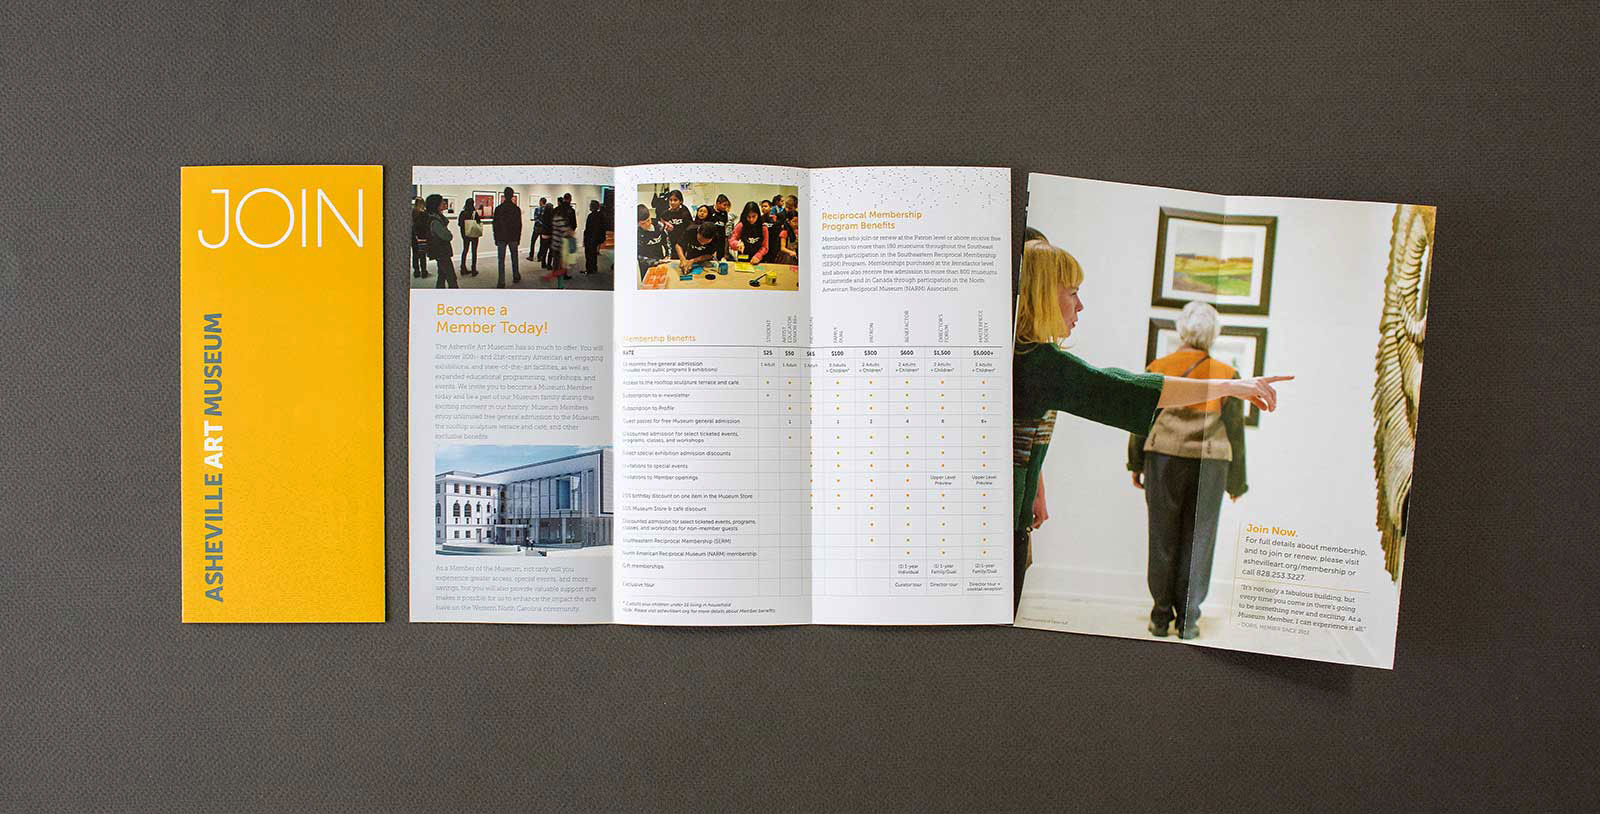 New Membership brochure for the Asheville Art Museum shows visitors viewing artworks and lists benefits of becoming a member.